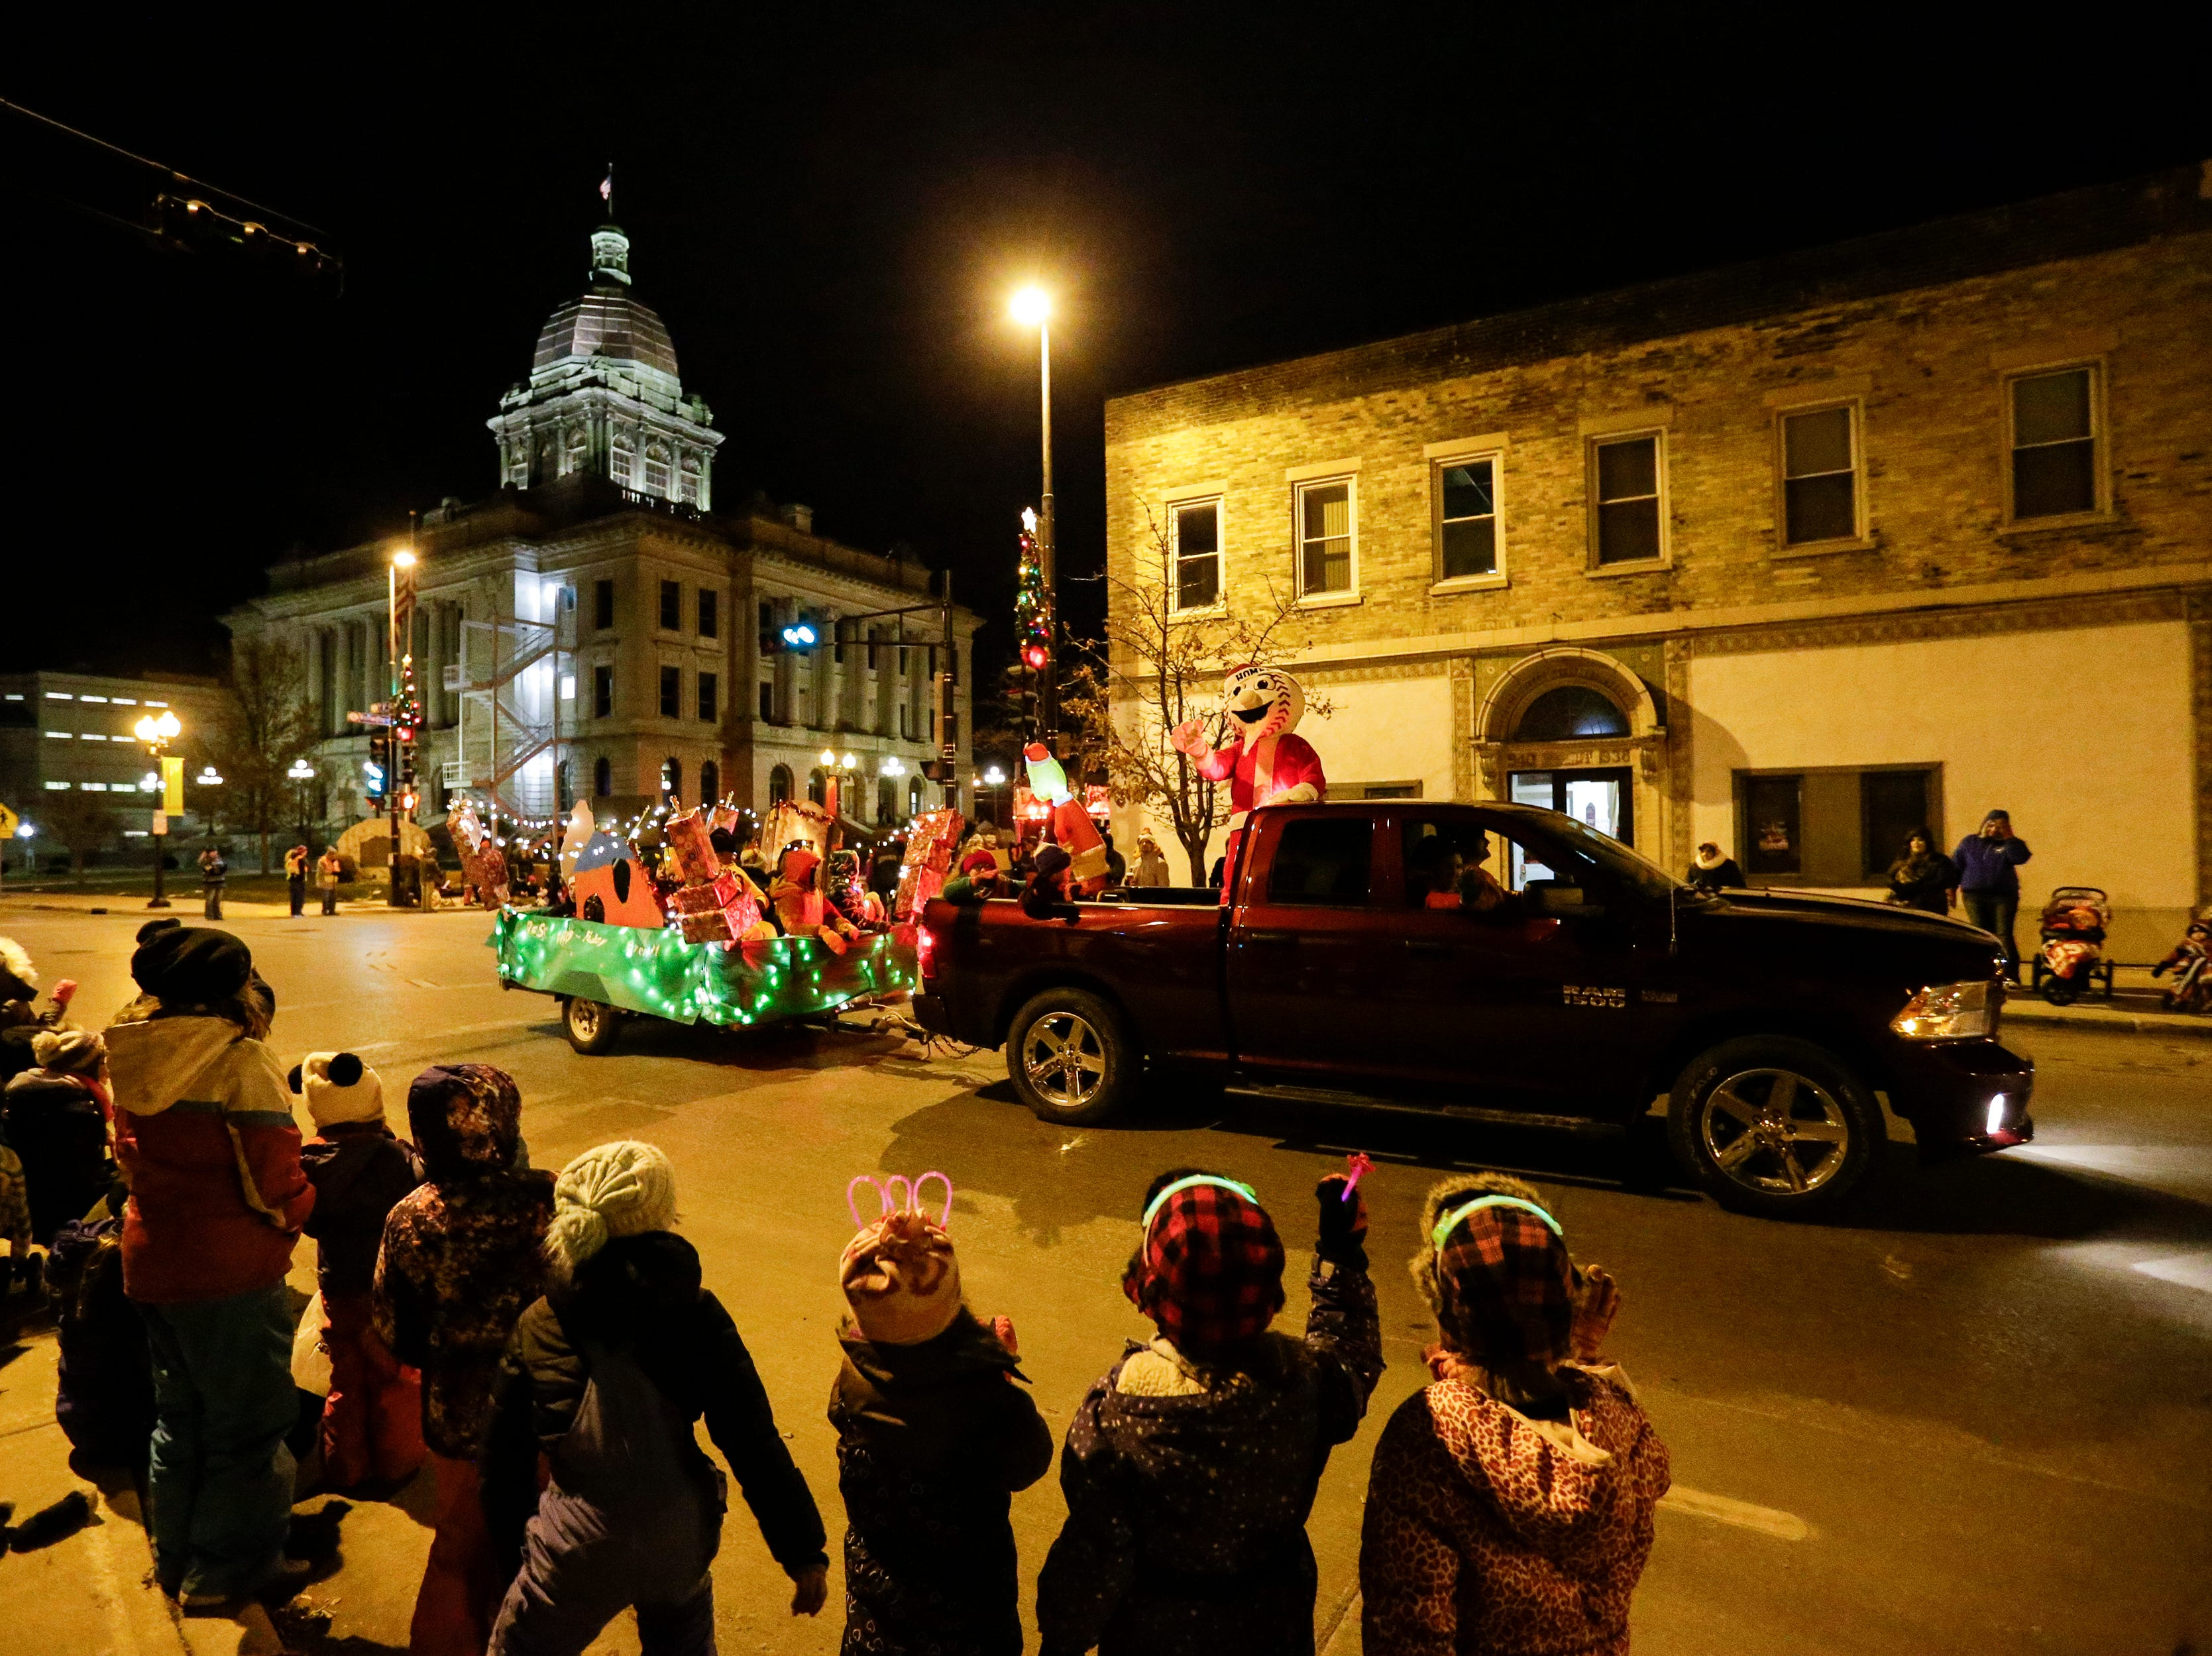 """Homer, the Miracle League mascot, waves to children during the 30th Annual Lakeshore Holiday Parade Wednesday, November 21, 2018, in Manitowoc, Wis. This year's theme was """"Christmas Through the Decades."""" Joshua Clark/USA TODAY NETWORK-Wisconsin"""